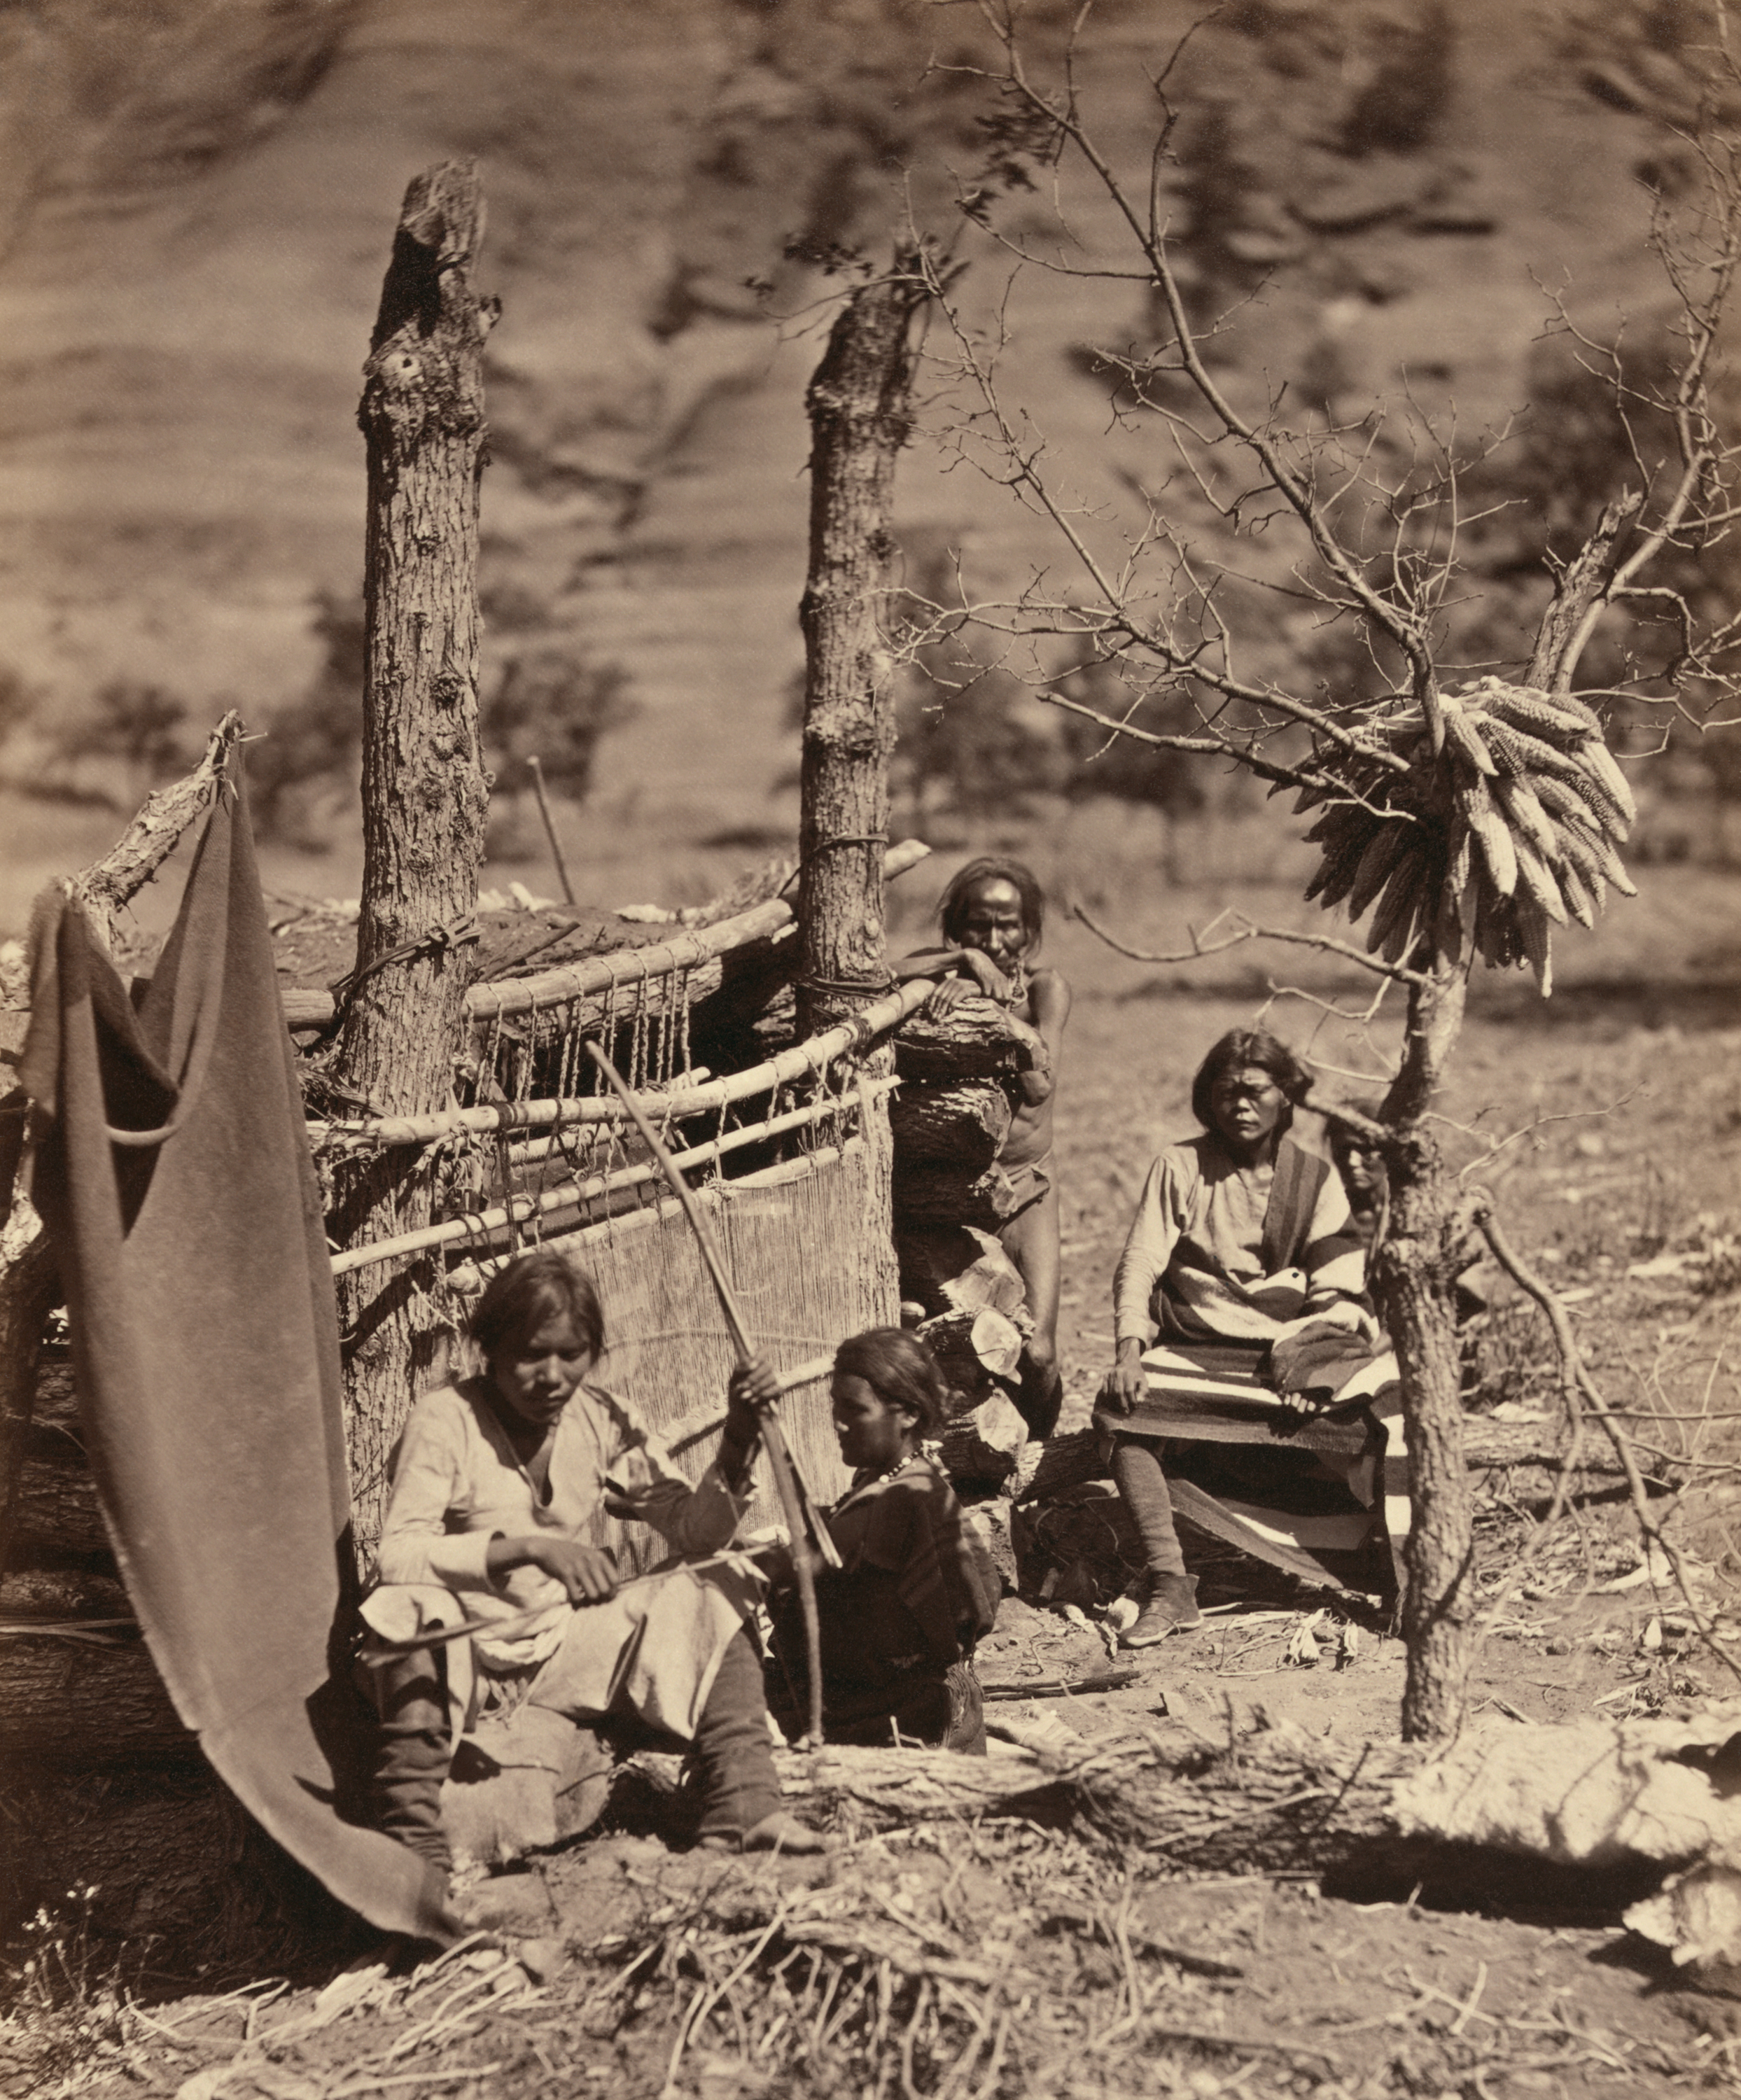 http://upload.wikimedia.org/wikipedia/commons/9/94/Navajofamilya.jpg